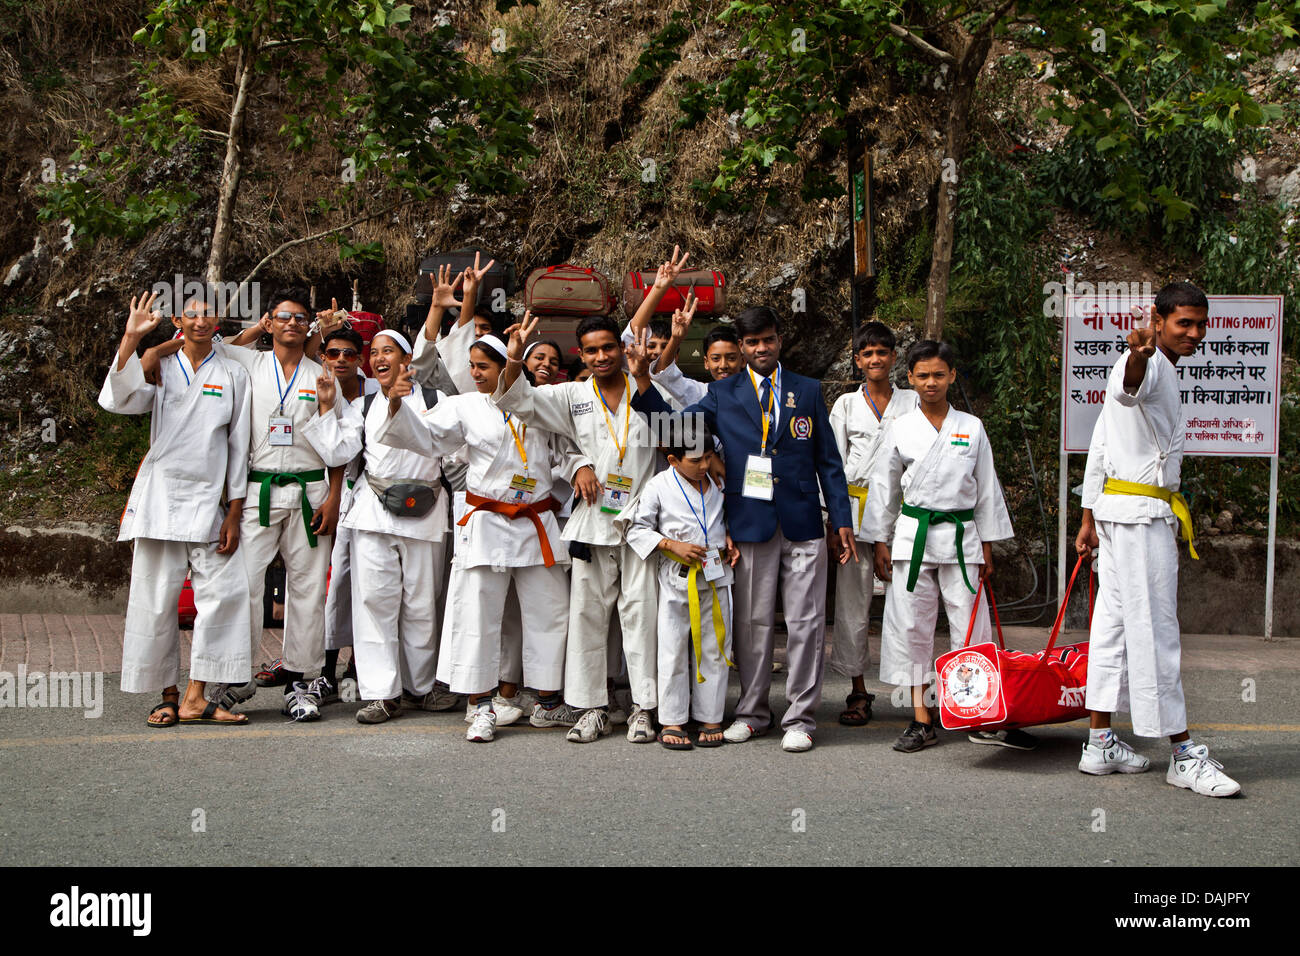 Martial Art players waving hands at roadside, Mall Road, Mussoorie, Uttarakhand, India - Stock Image